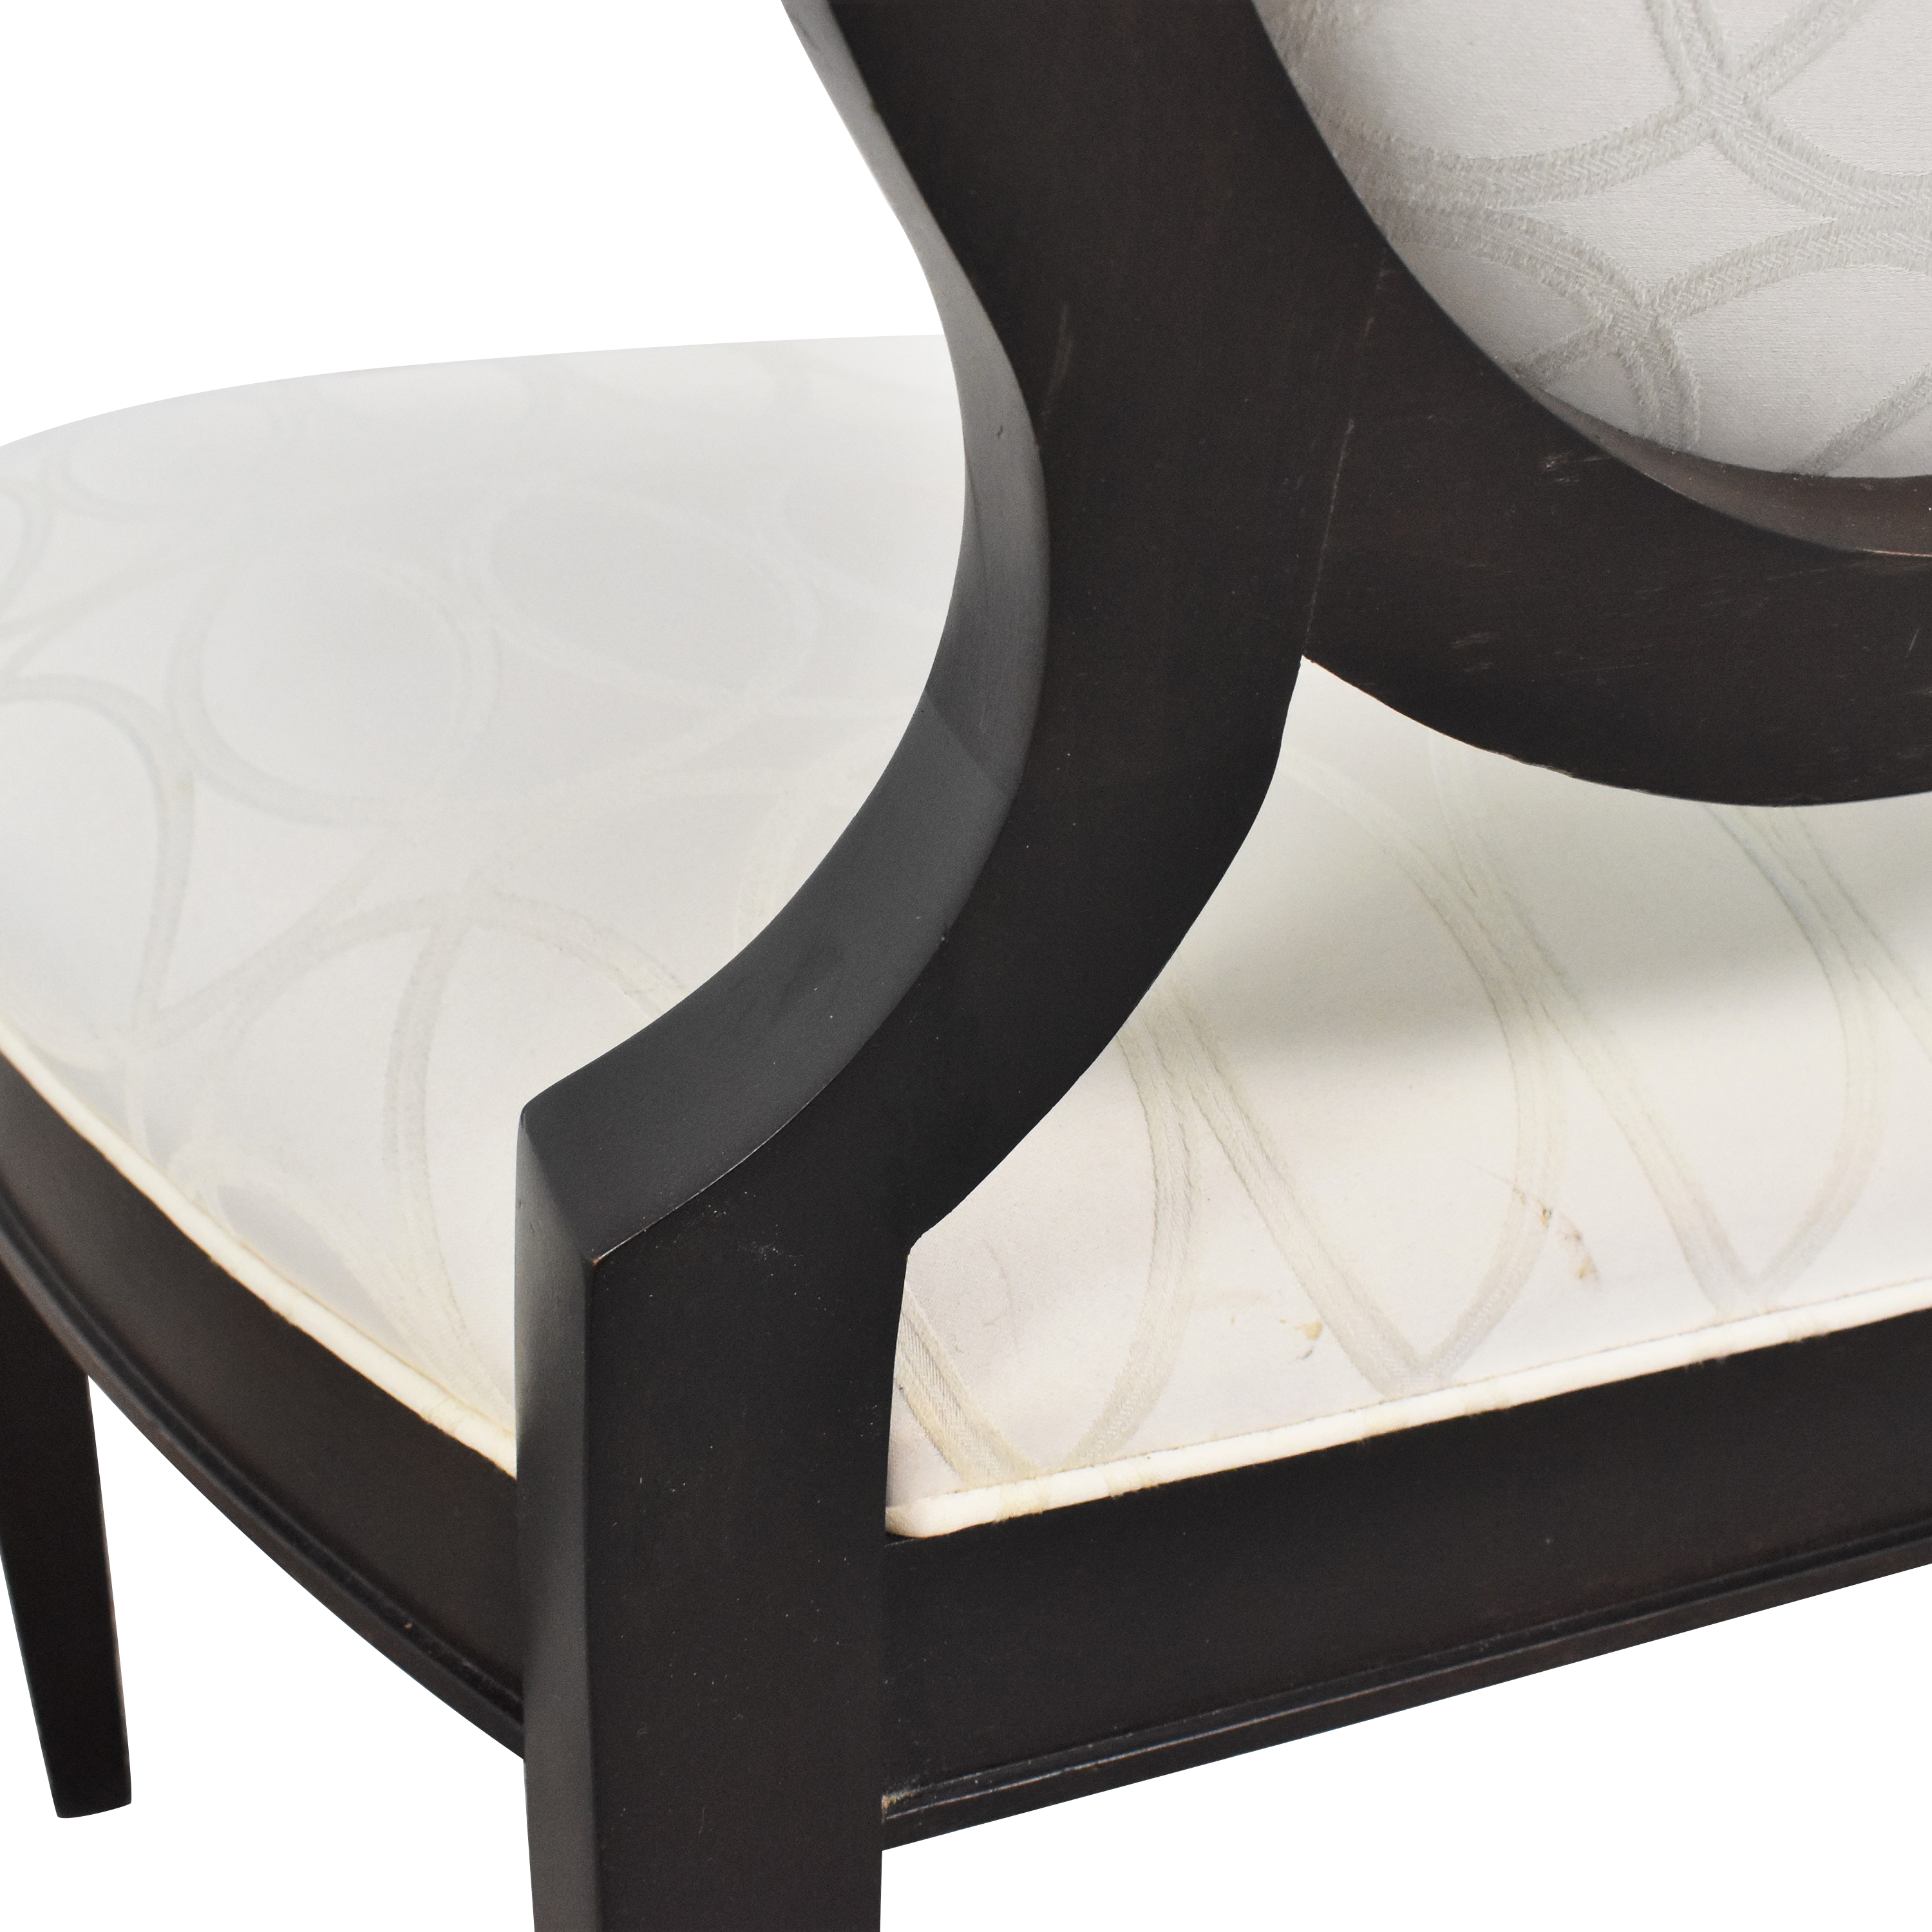 Ethan Allen Ethan Allen Lindsay Dining Chairs on sale